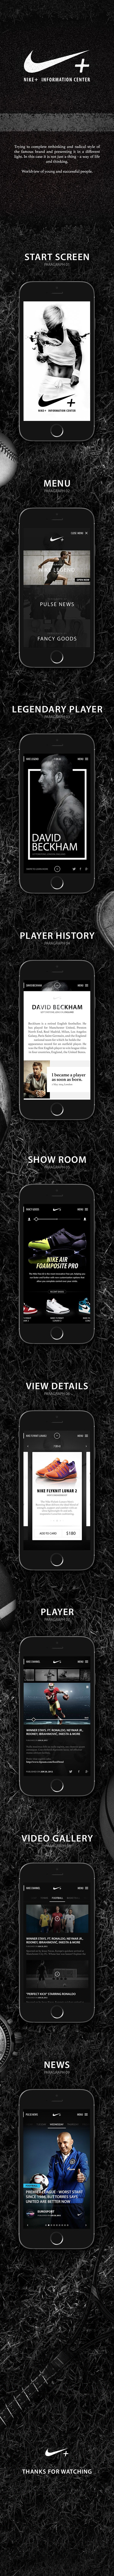 Nike. New Look & Concept | Abduzeedo Design Inspiration